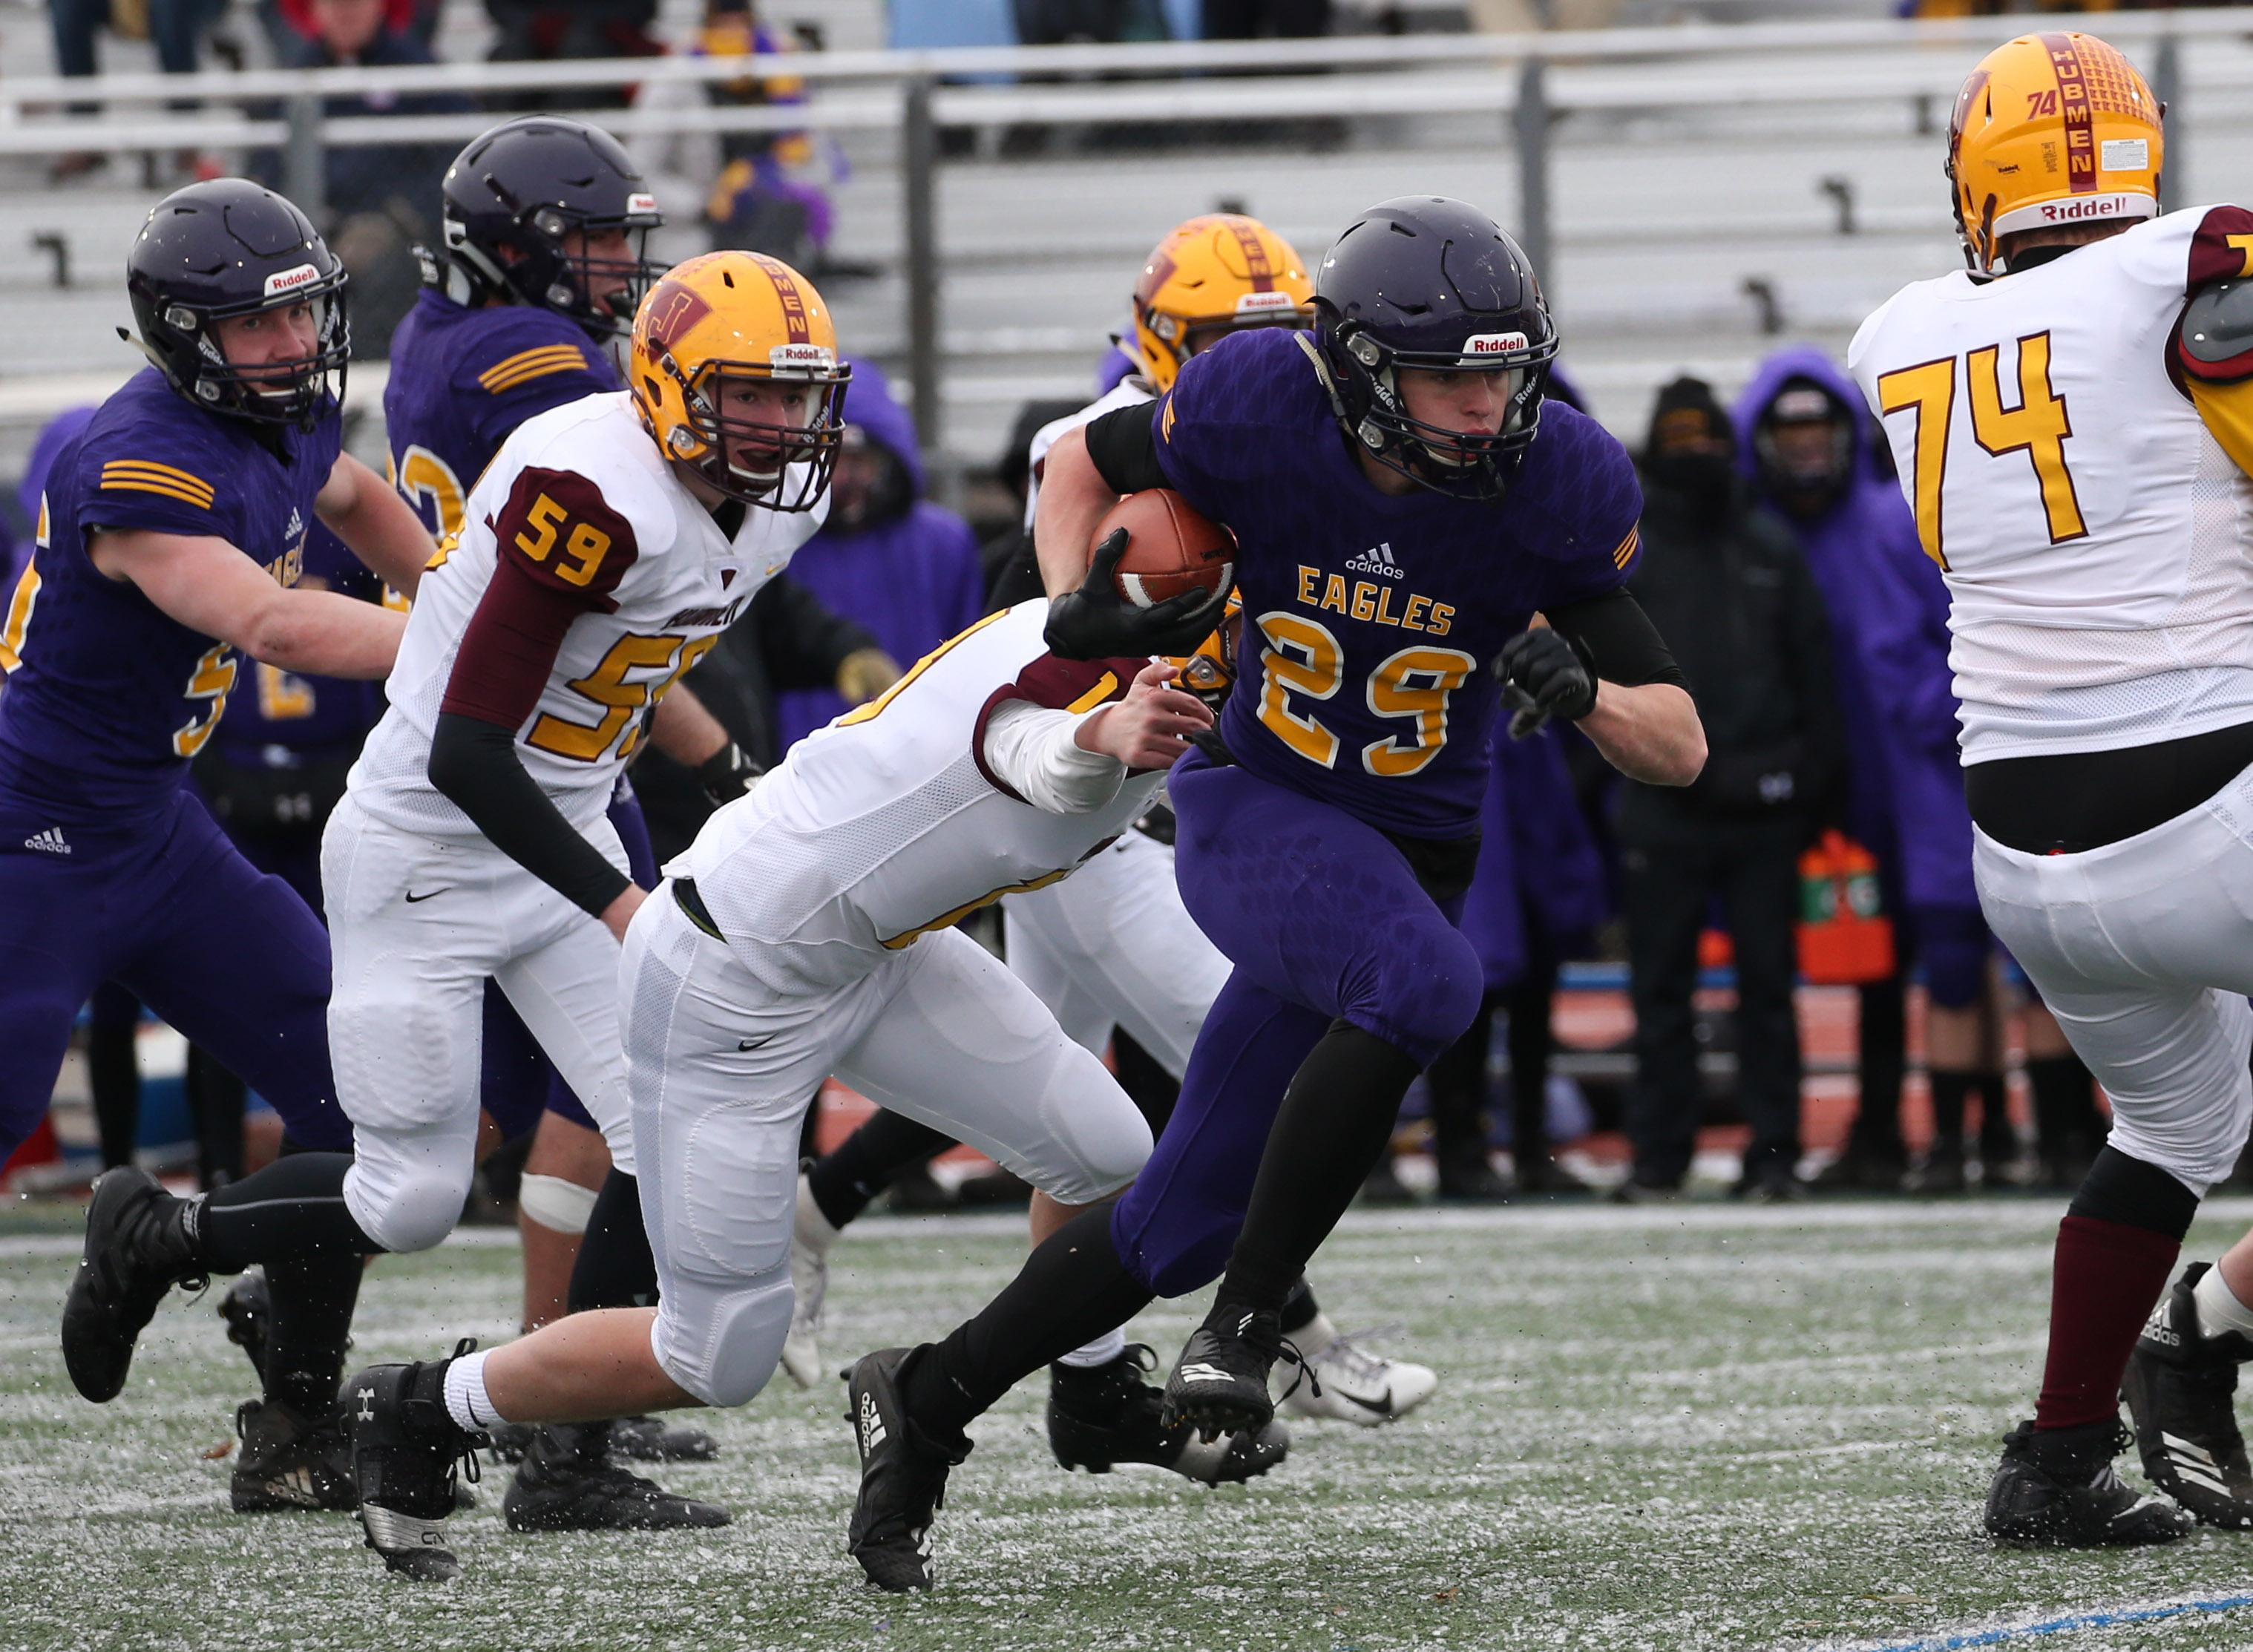 Zach Jungels (29) breaks free of the last tackle for a 33-yard touchdown in the fourth quarter solidifying a 24-0 win for Rochester Lourdes. Photo by Cheryl Myers, SportsEngine